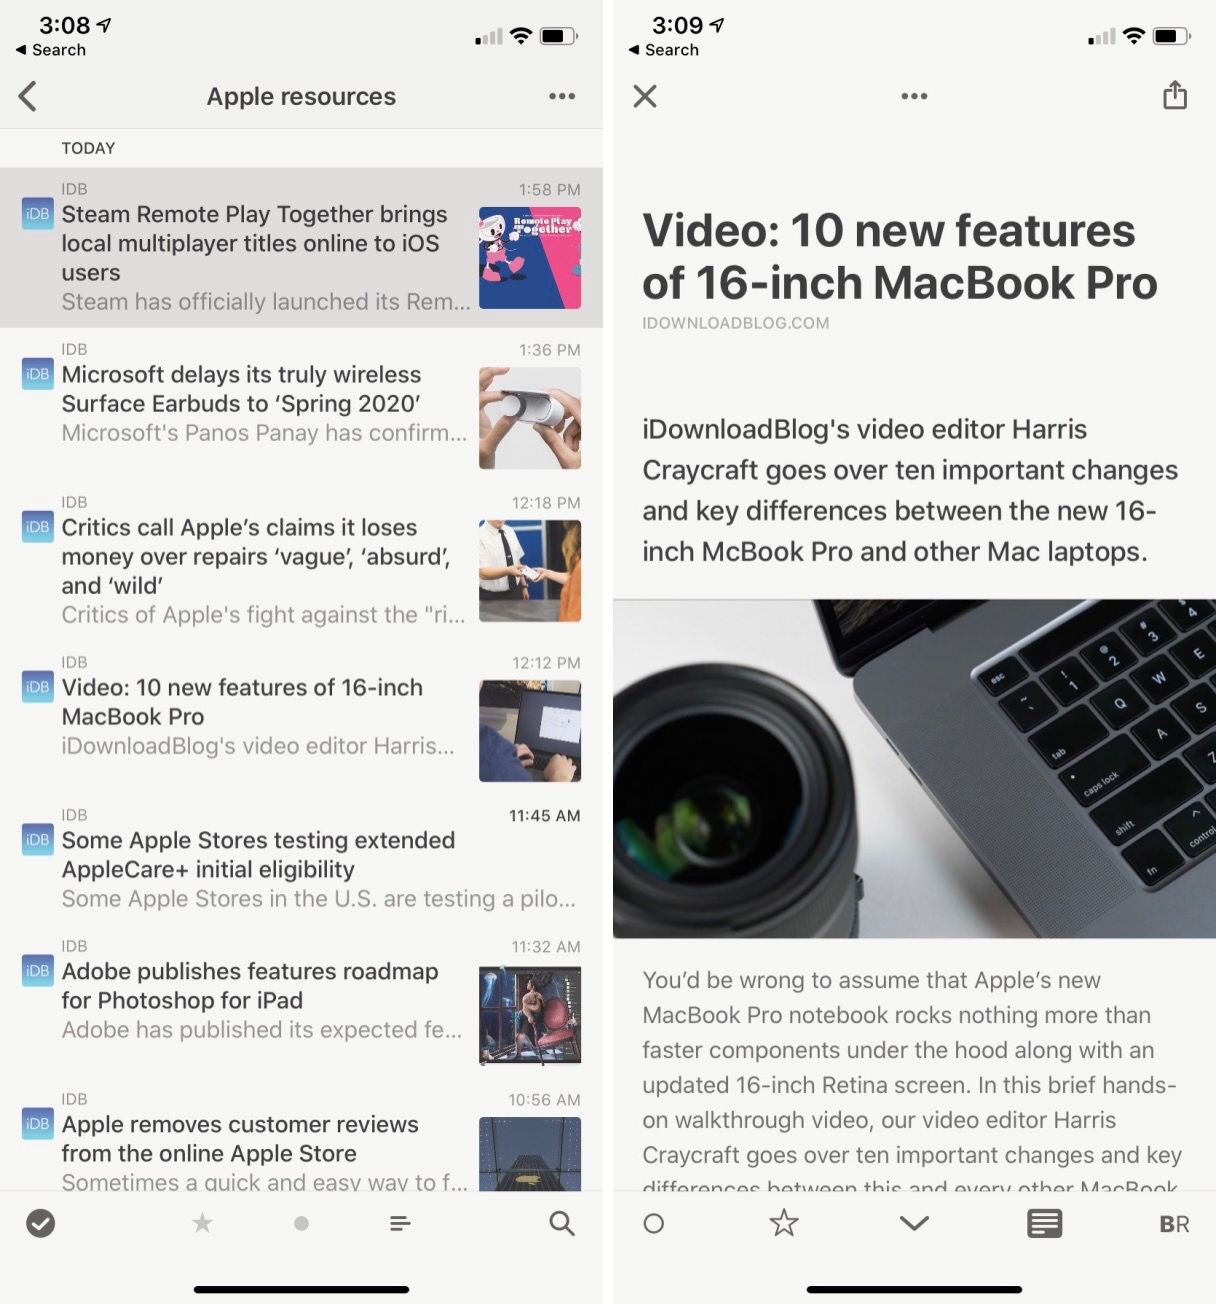 Reeder 4 RSS reader on iPhone